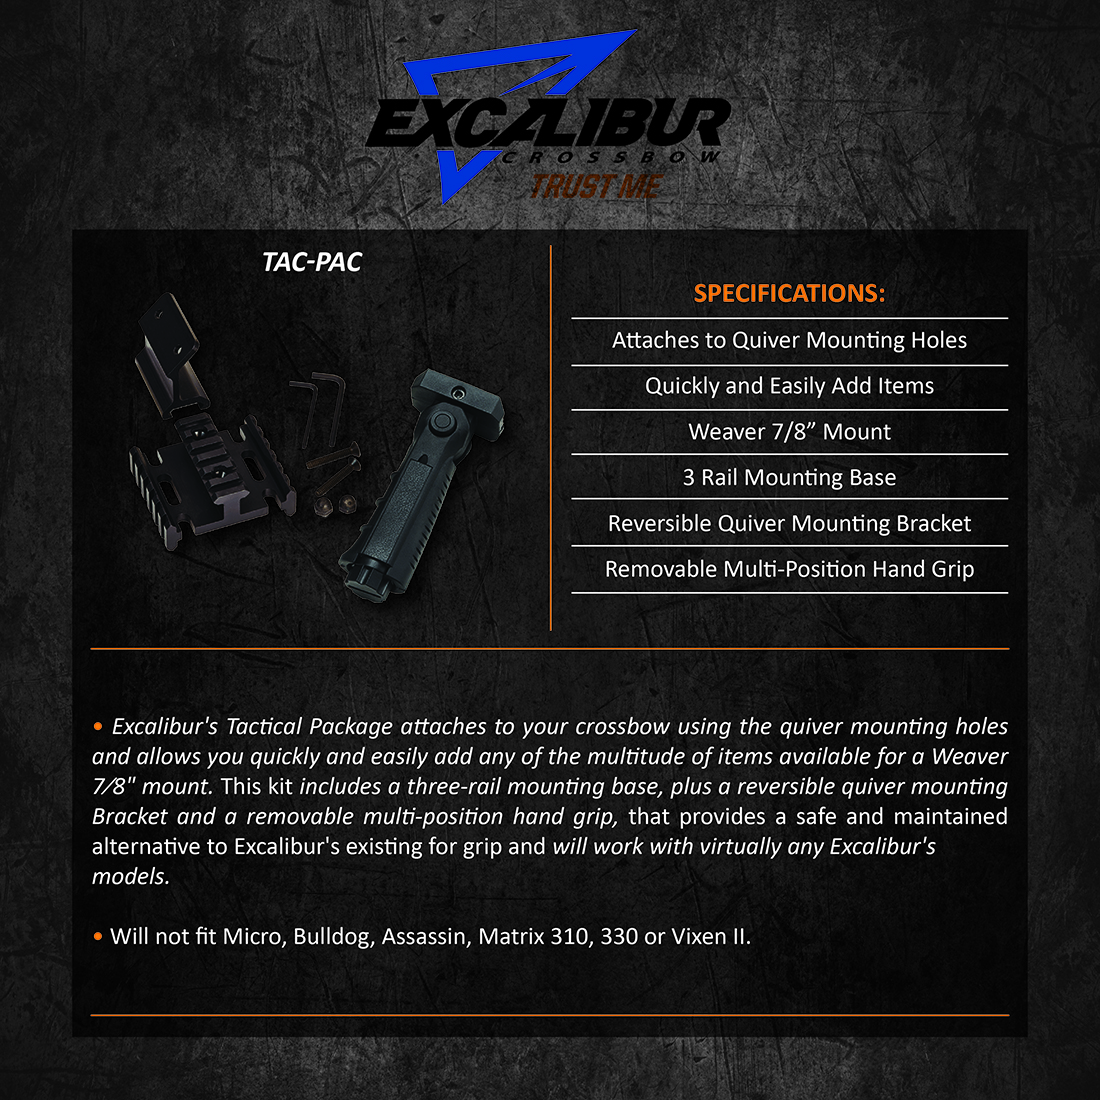 Excalibur_Tac_Pac_Product_Description